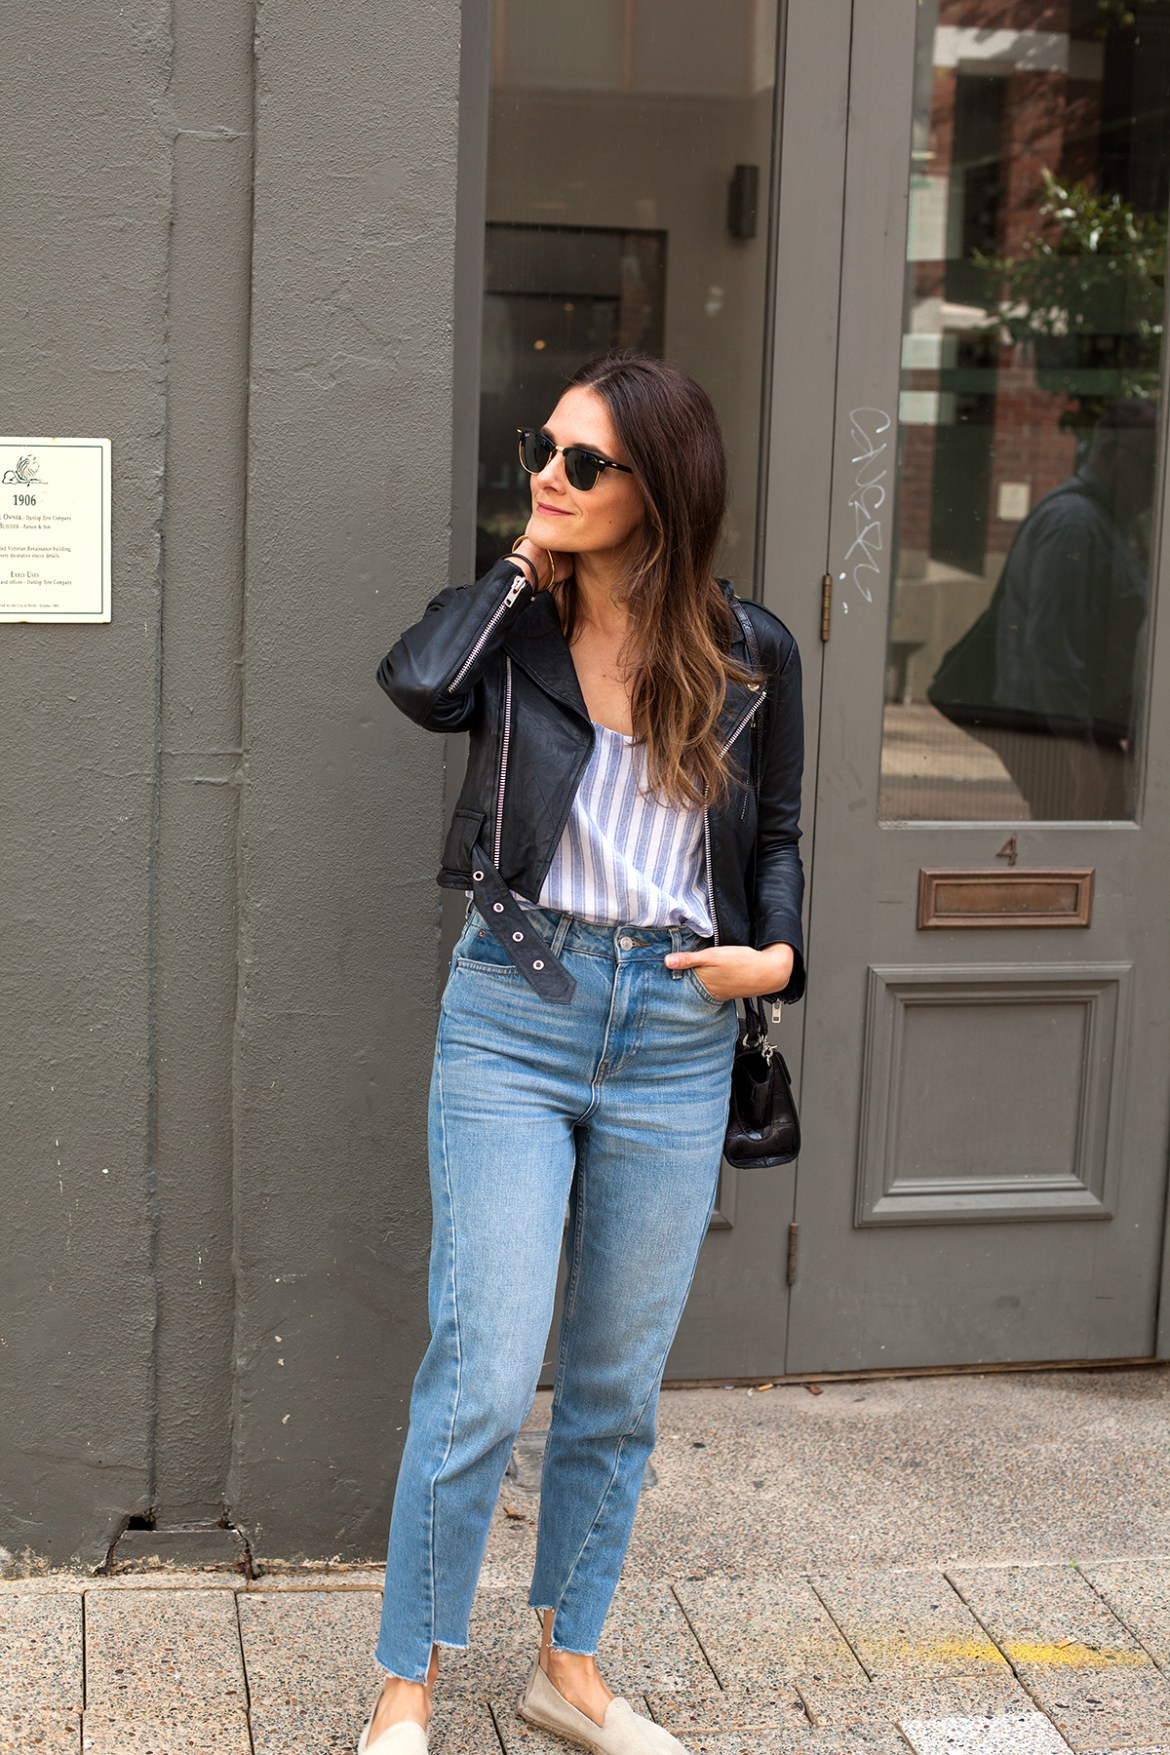 Biker jackets, By The Weekend striped blue camisole worn by Jenelle from fashion blog Inspiring Wit with black leather moto jacket, Manebi espadrilles and mom jeans